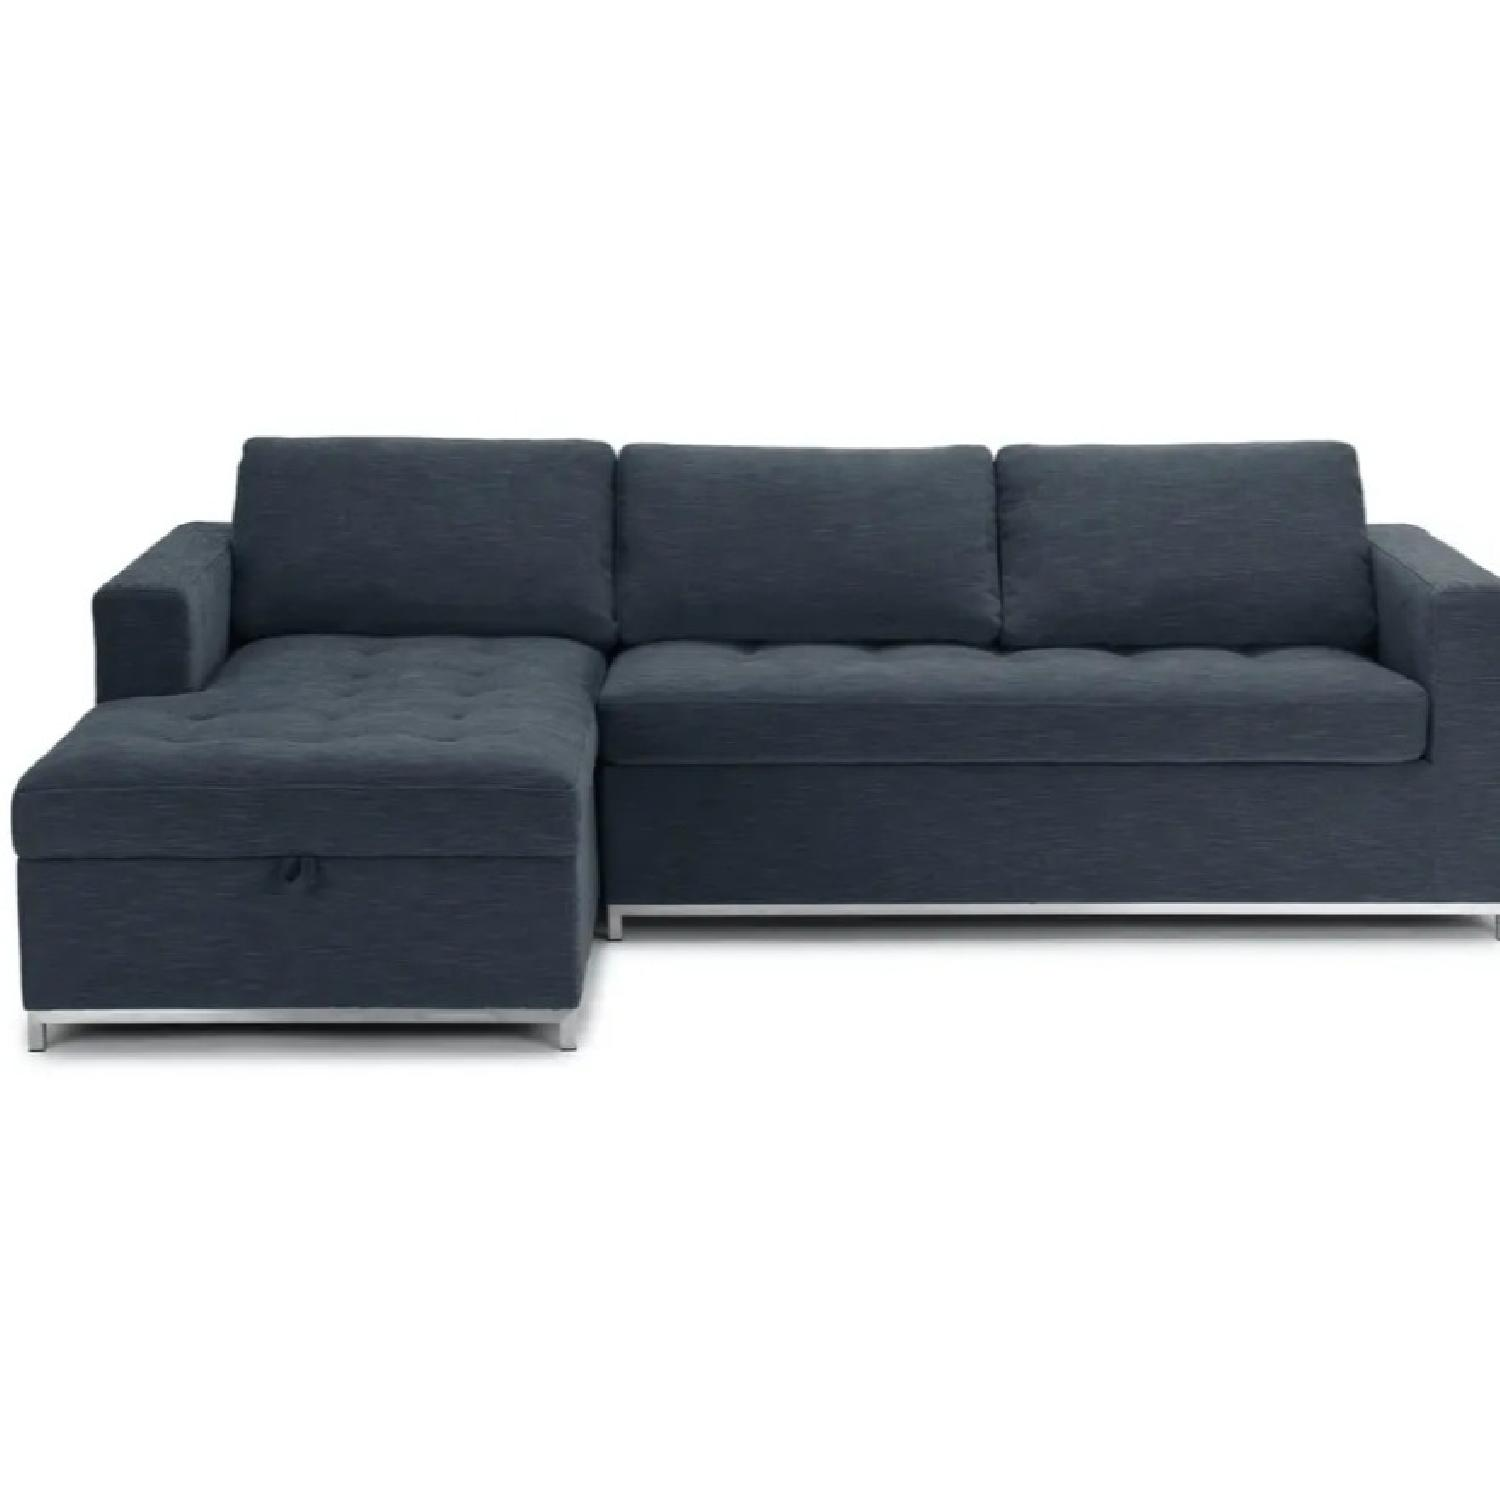 Article Soma Midnight Blue Sleeper Sectional Sofa - image-0